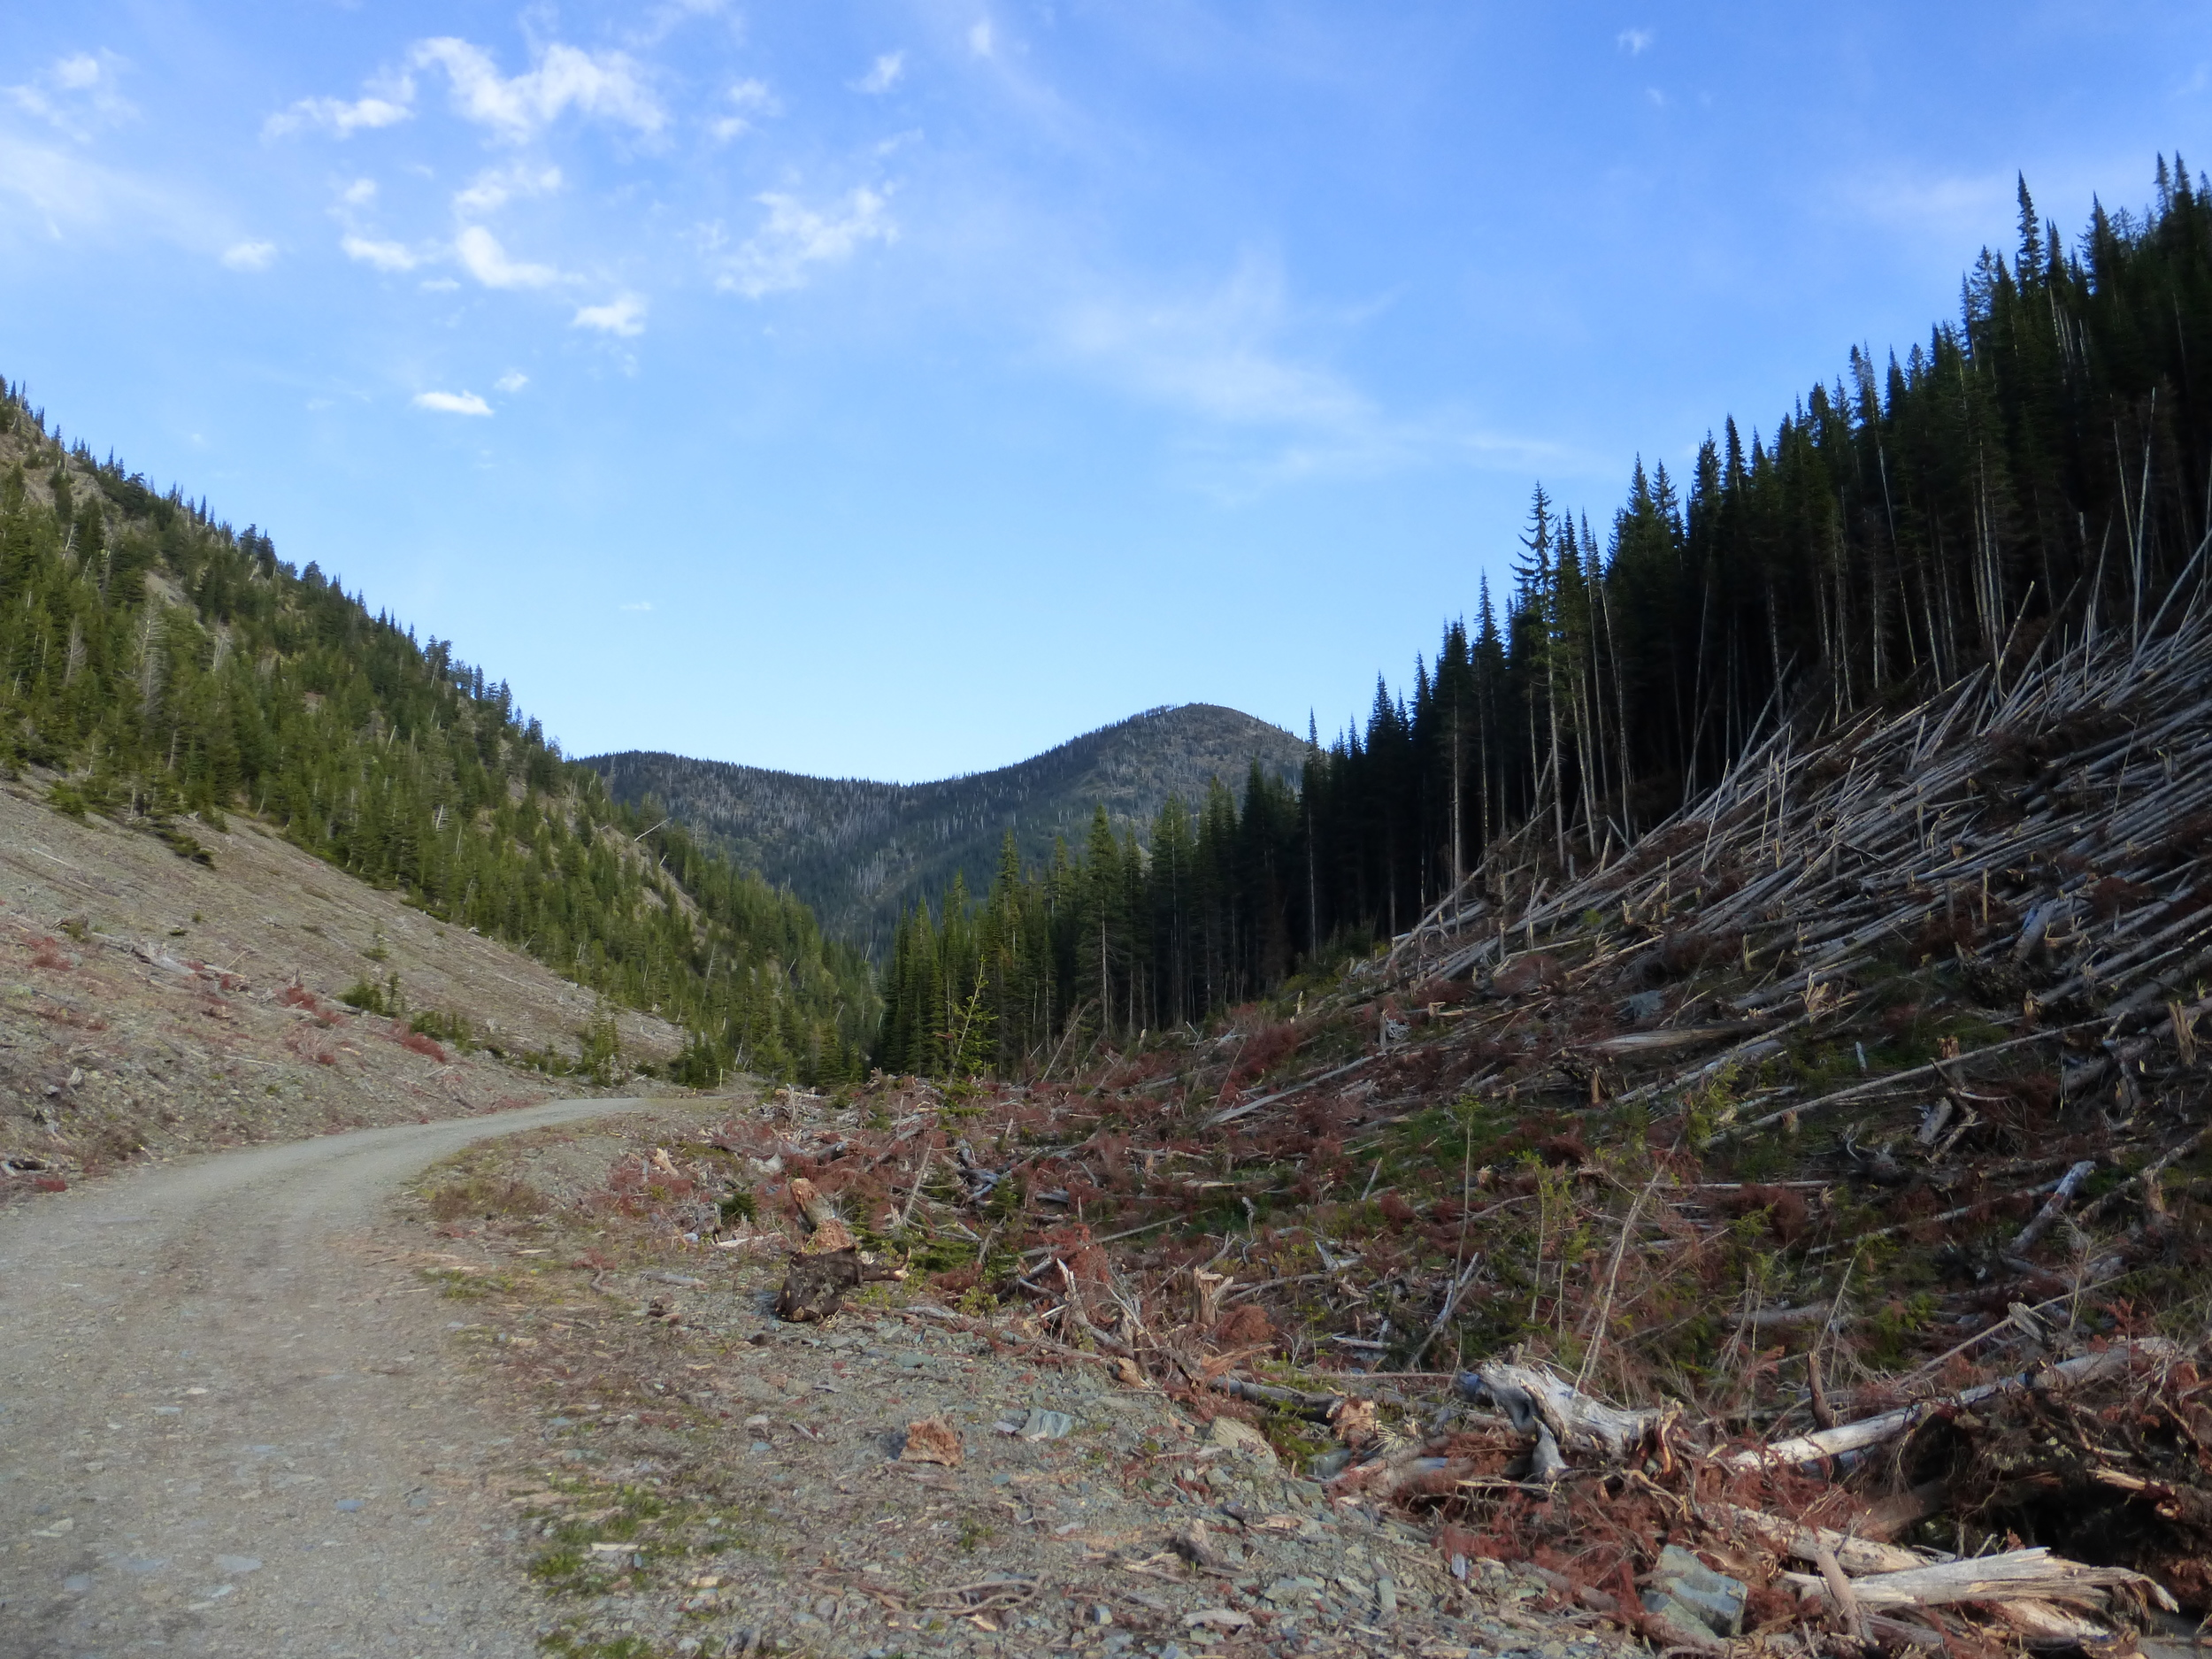 An avalanche had swept through this pass.